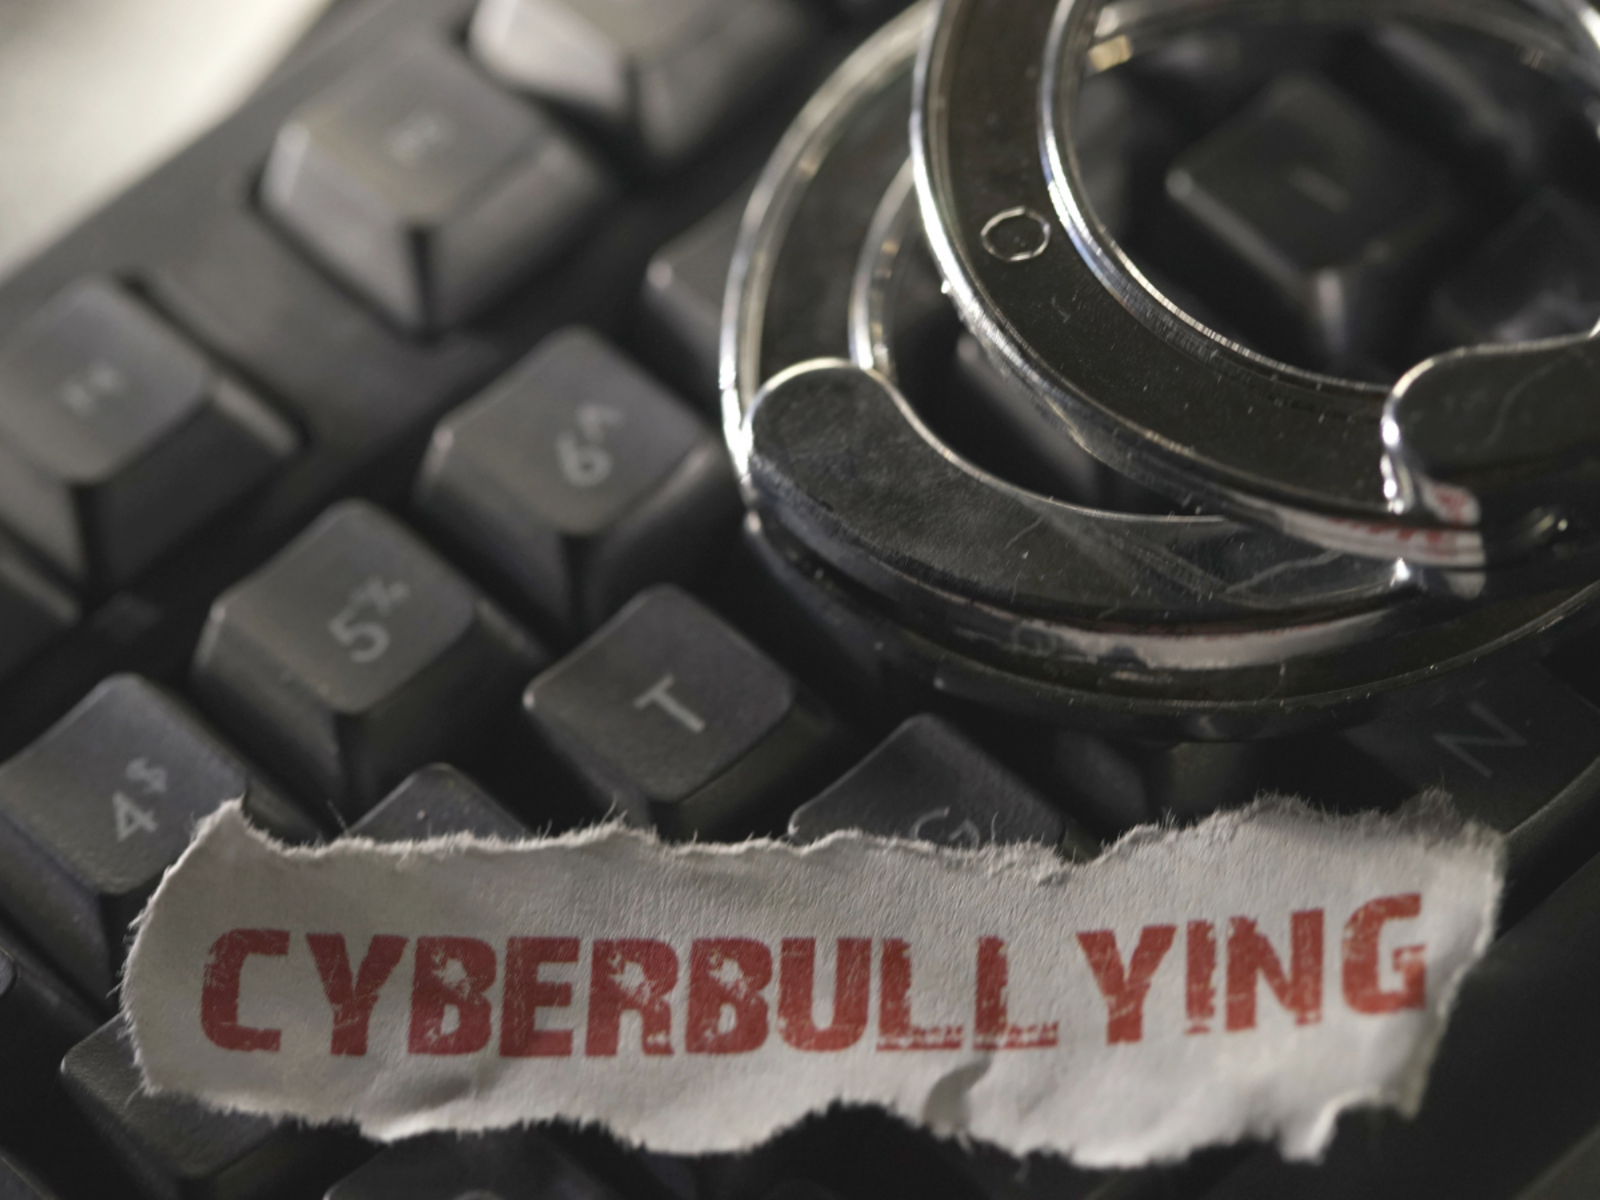 Cyberbullying Is Against the Law in Texas